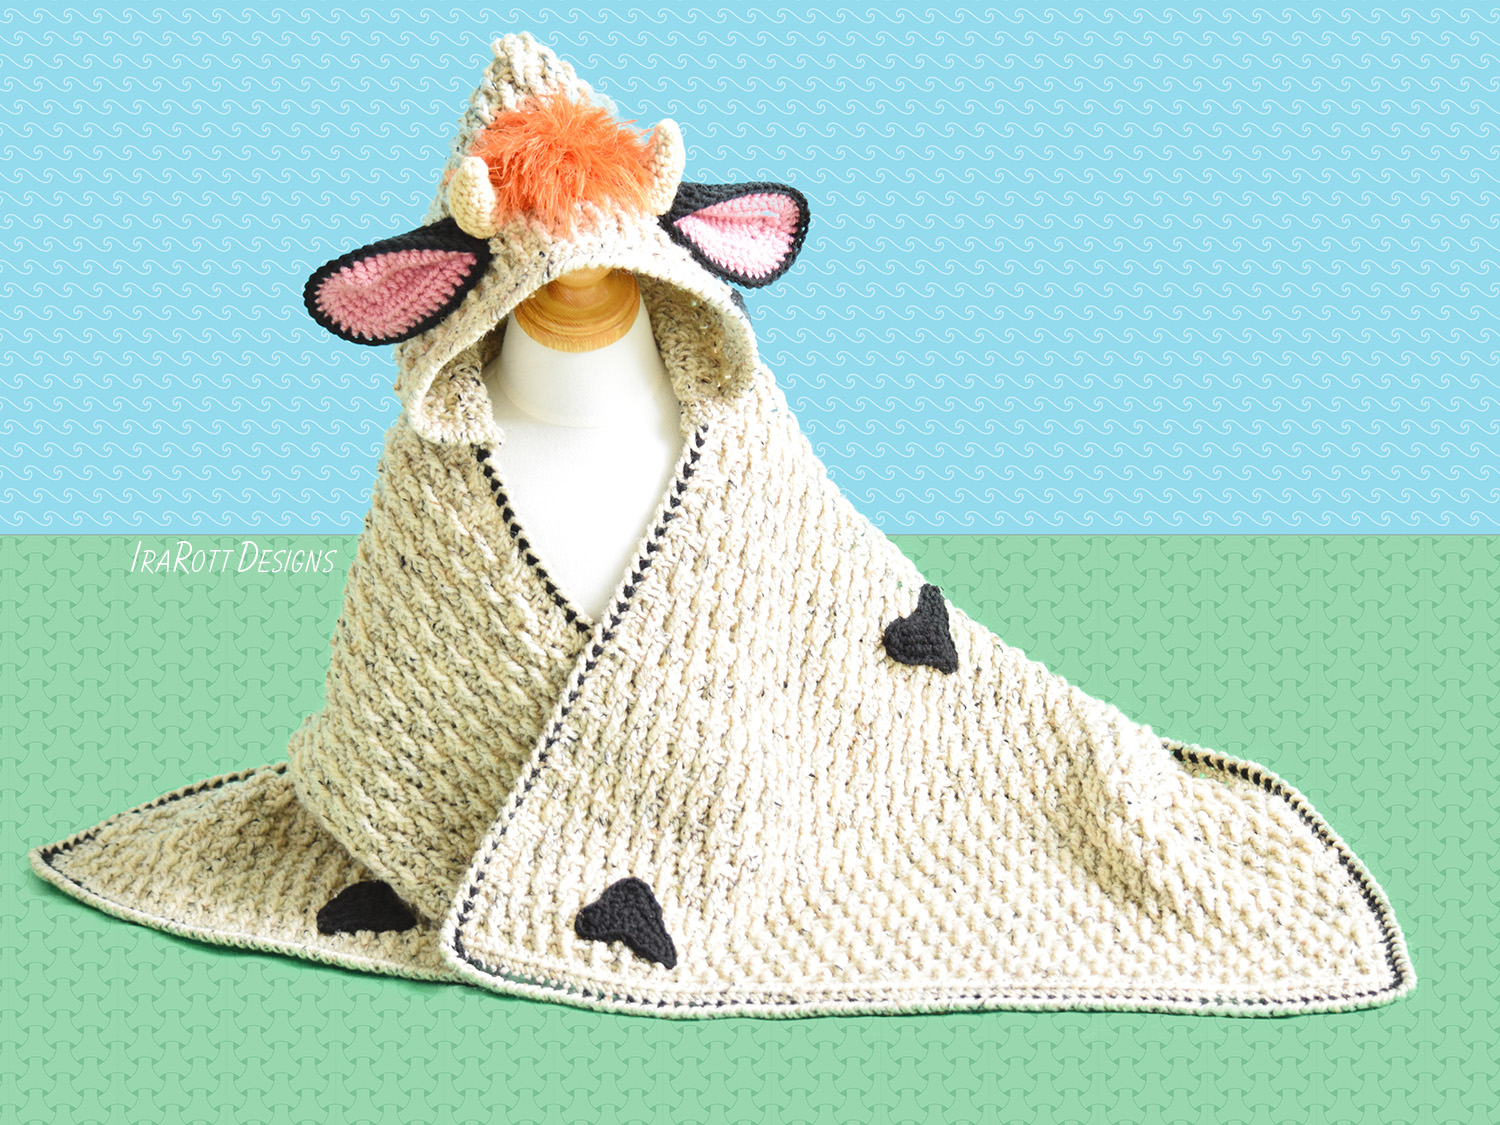 Luna The Moo Moo Cow Hooded Blanket Pdf Crochet Pattern Irarott Inc